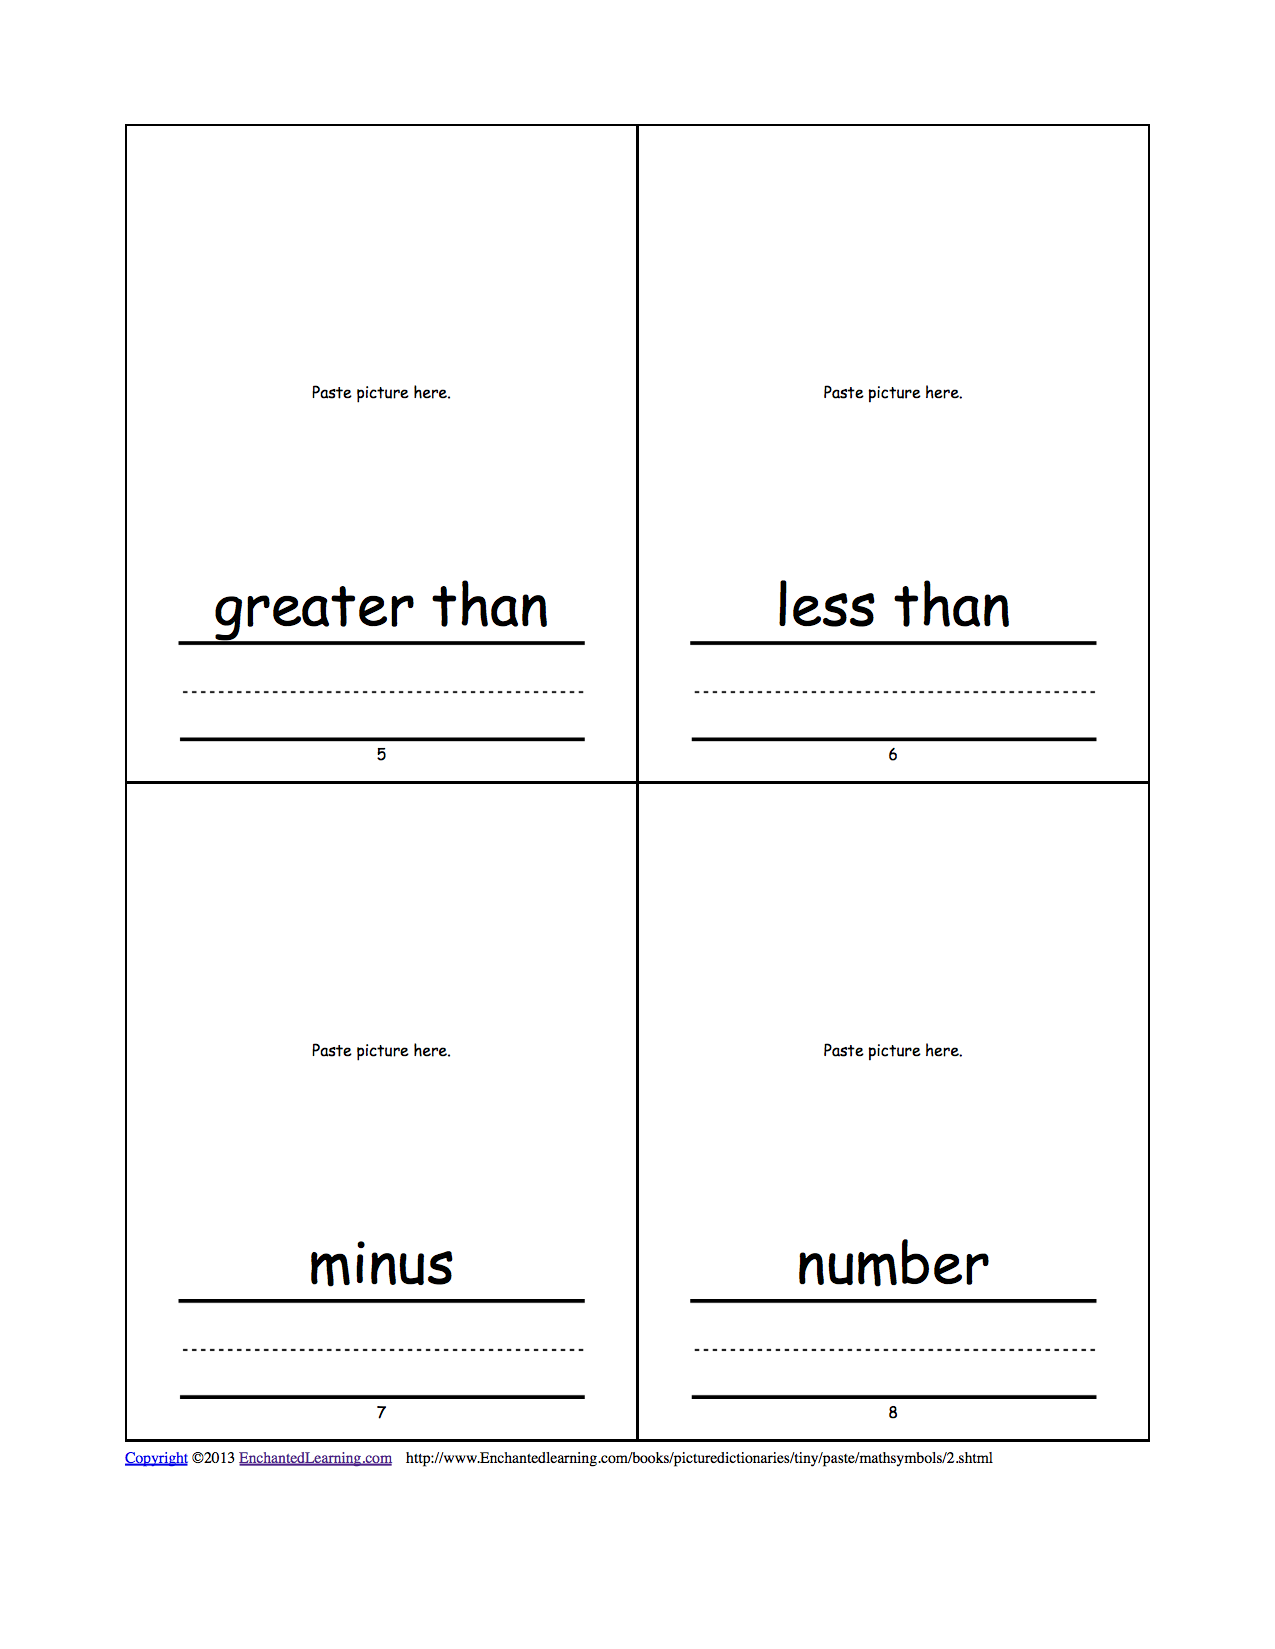 Math symbols cut and paste picture dictionary a short book to words greater than less than minus number buycottarizona Image collections